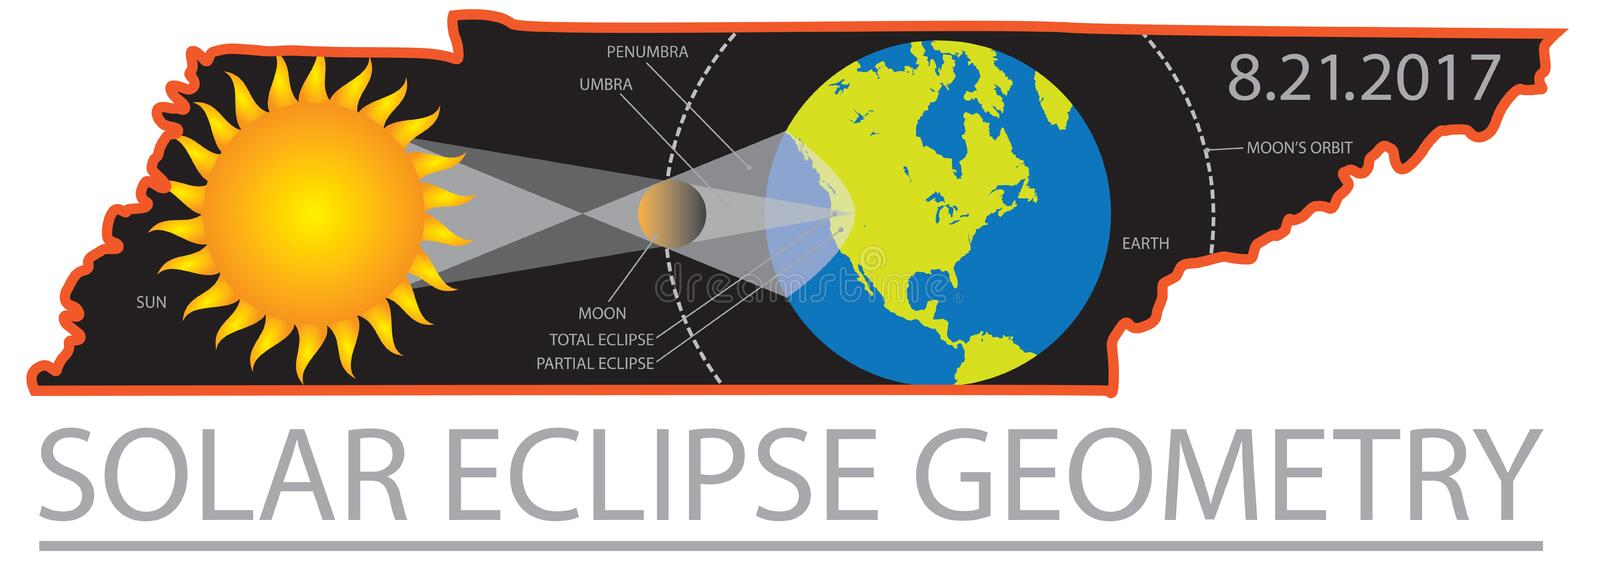 2017 Solar Eclipse Geometry Across Tennessee Cities Map vector stock illustration